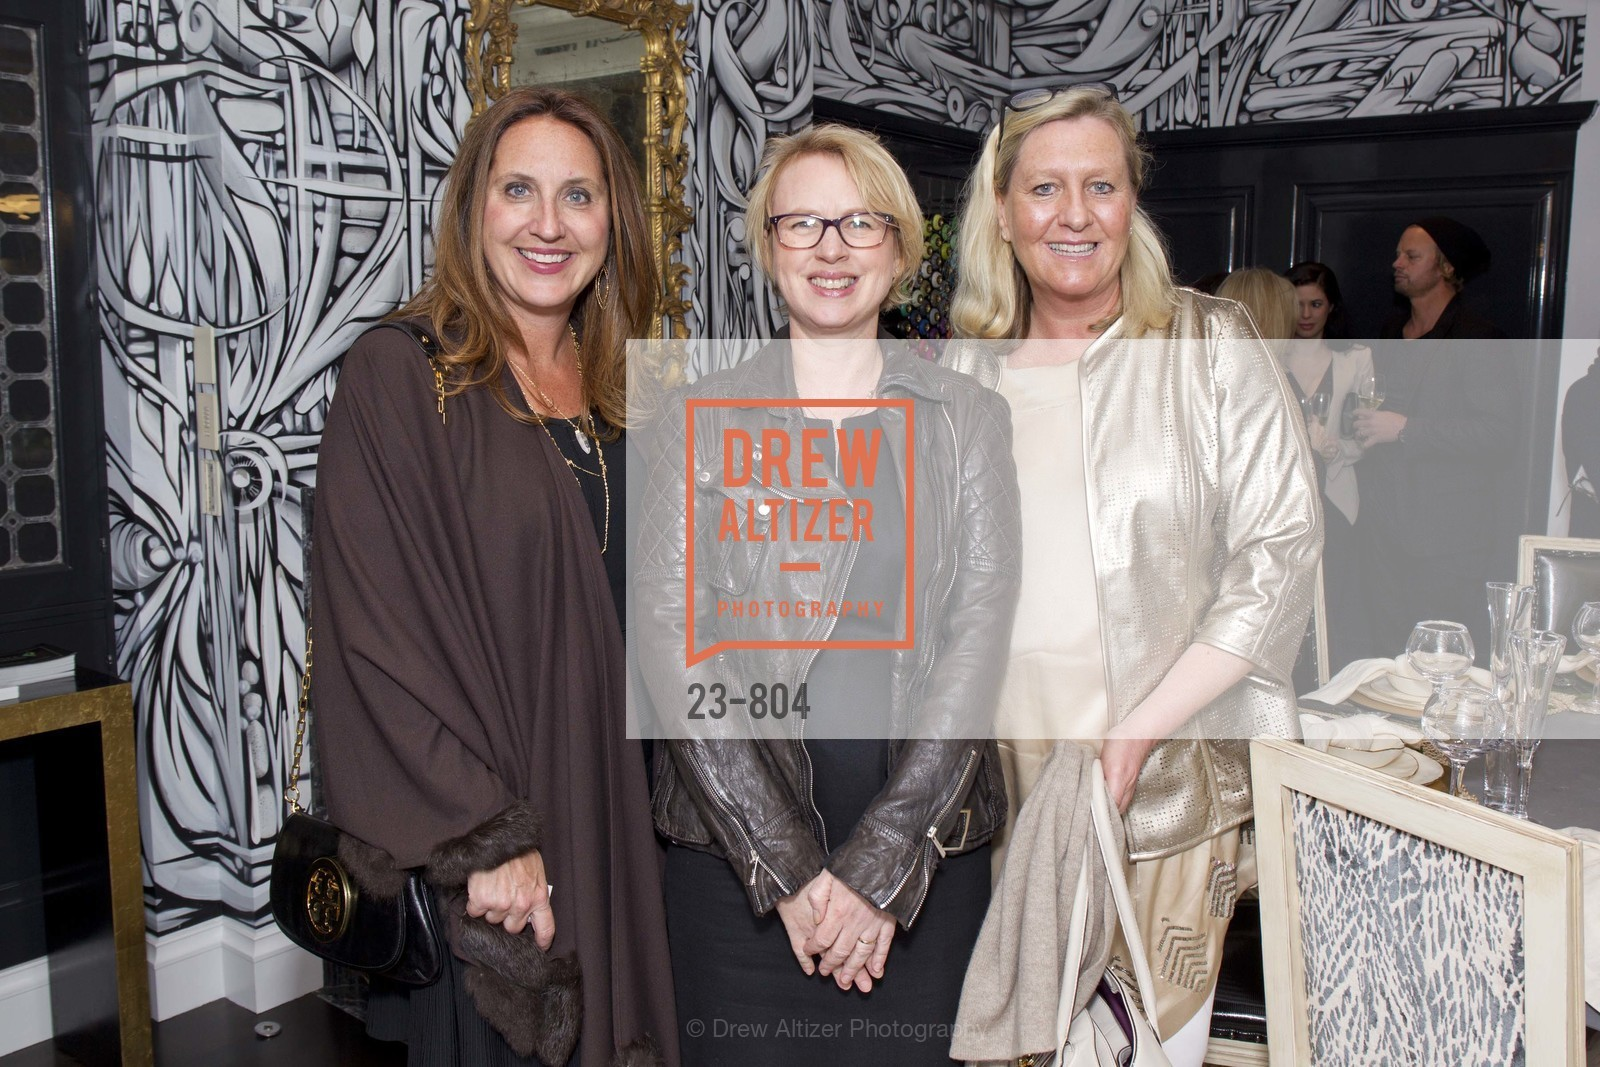 Natalie Mize, Karen Wallis, Jennifer Matthews, San Francisco Decorator Showcase Opening Night Party, US, April 25th, 2015,Drew Altizer, Drew Altizer Photography, full-service agency, private events, San Francisco photographer, photographer california